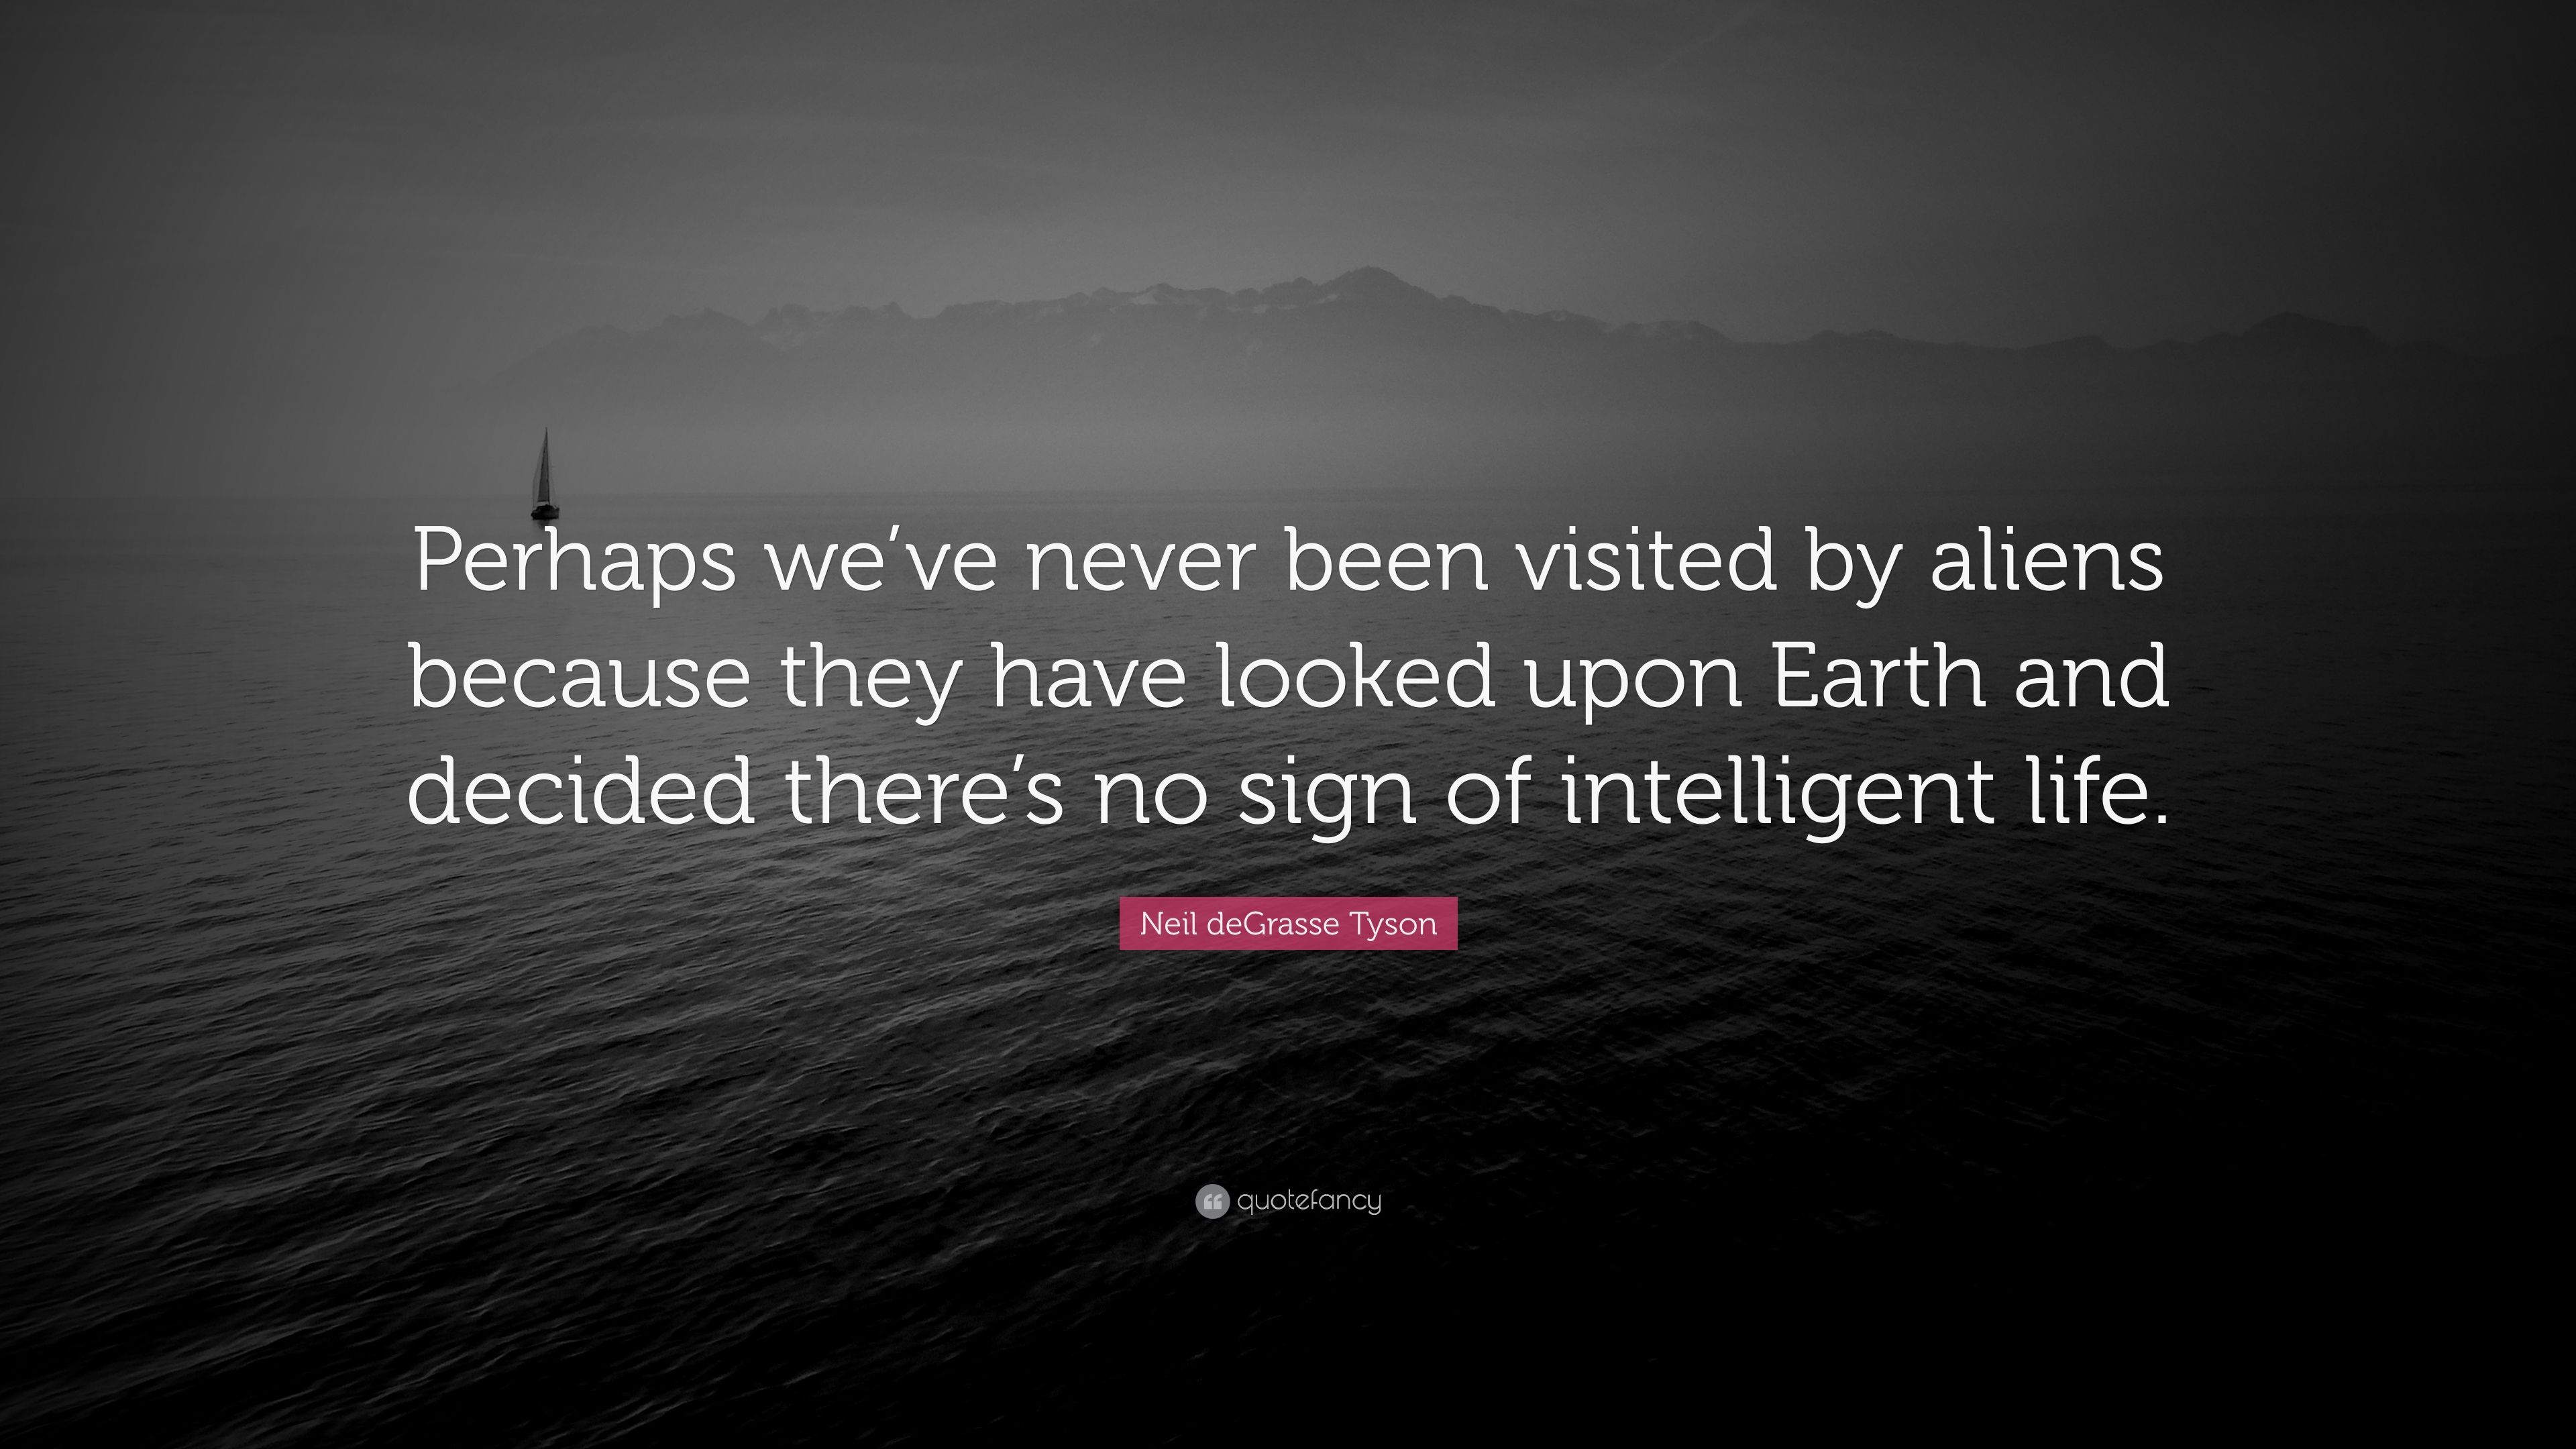 Perhaps we are looking for intelligent life is not there